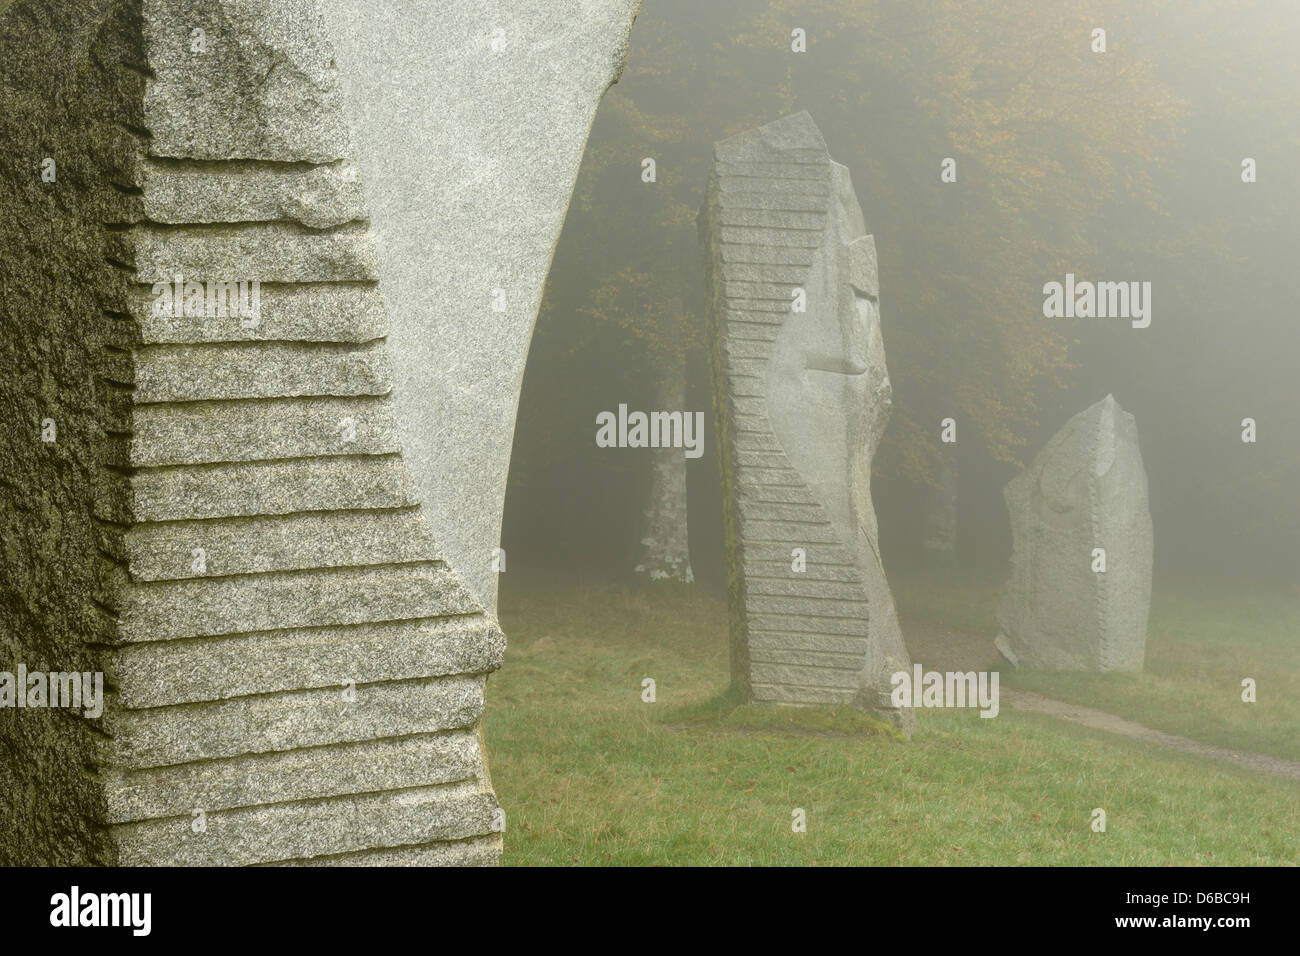 Standing stones at Heaven's Gate in the Longleat Estate, Wiltshire, UK. The stones were carved by artist Paul - Stock Image